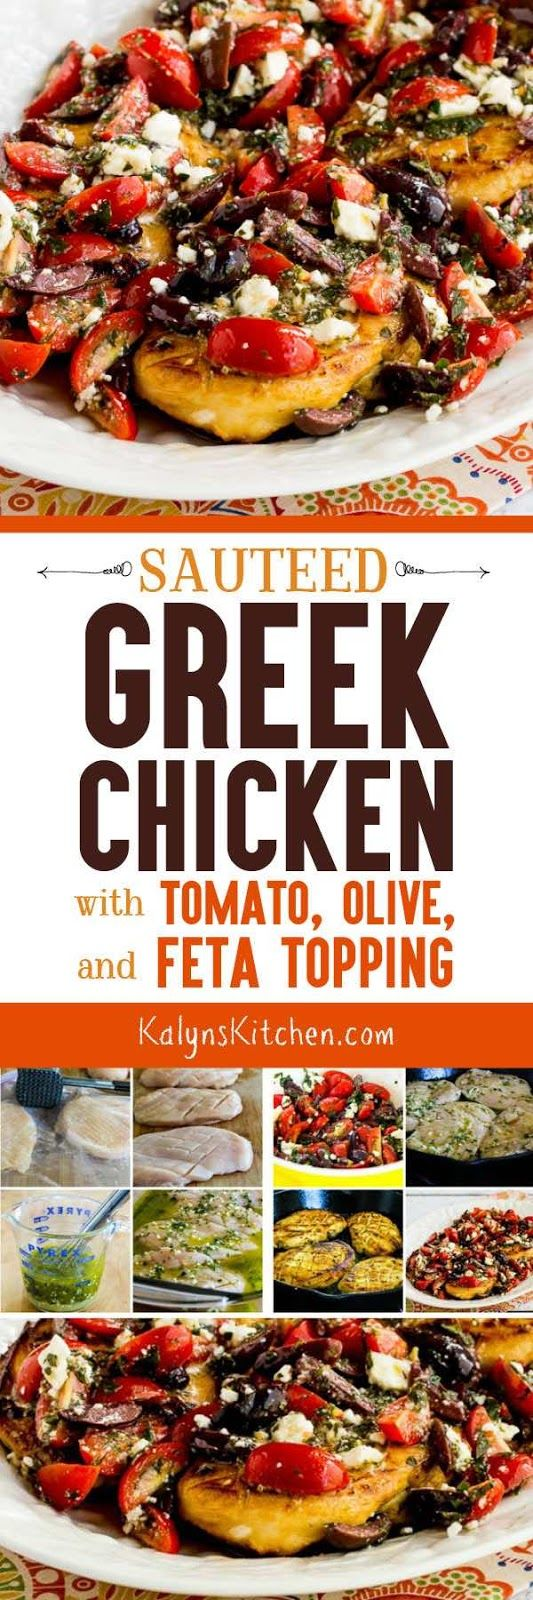 Sauteed Greek Chicken with Tomato, Olive, and Feta Topping is easy enough for an after-work dinner, and this tasty chicken is low-carb, low-glycemic, gluten-free, and South Beach Diet friendly. Use cherry tomatoes or grape tomatoes if it's not fresh tomato season. [found on KalynsKitchen.com] #GreekChicken #ChickenRecipe #GreekChickenRecipe